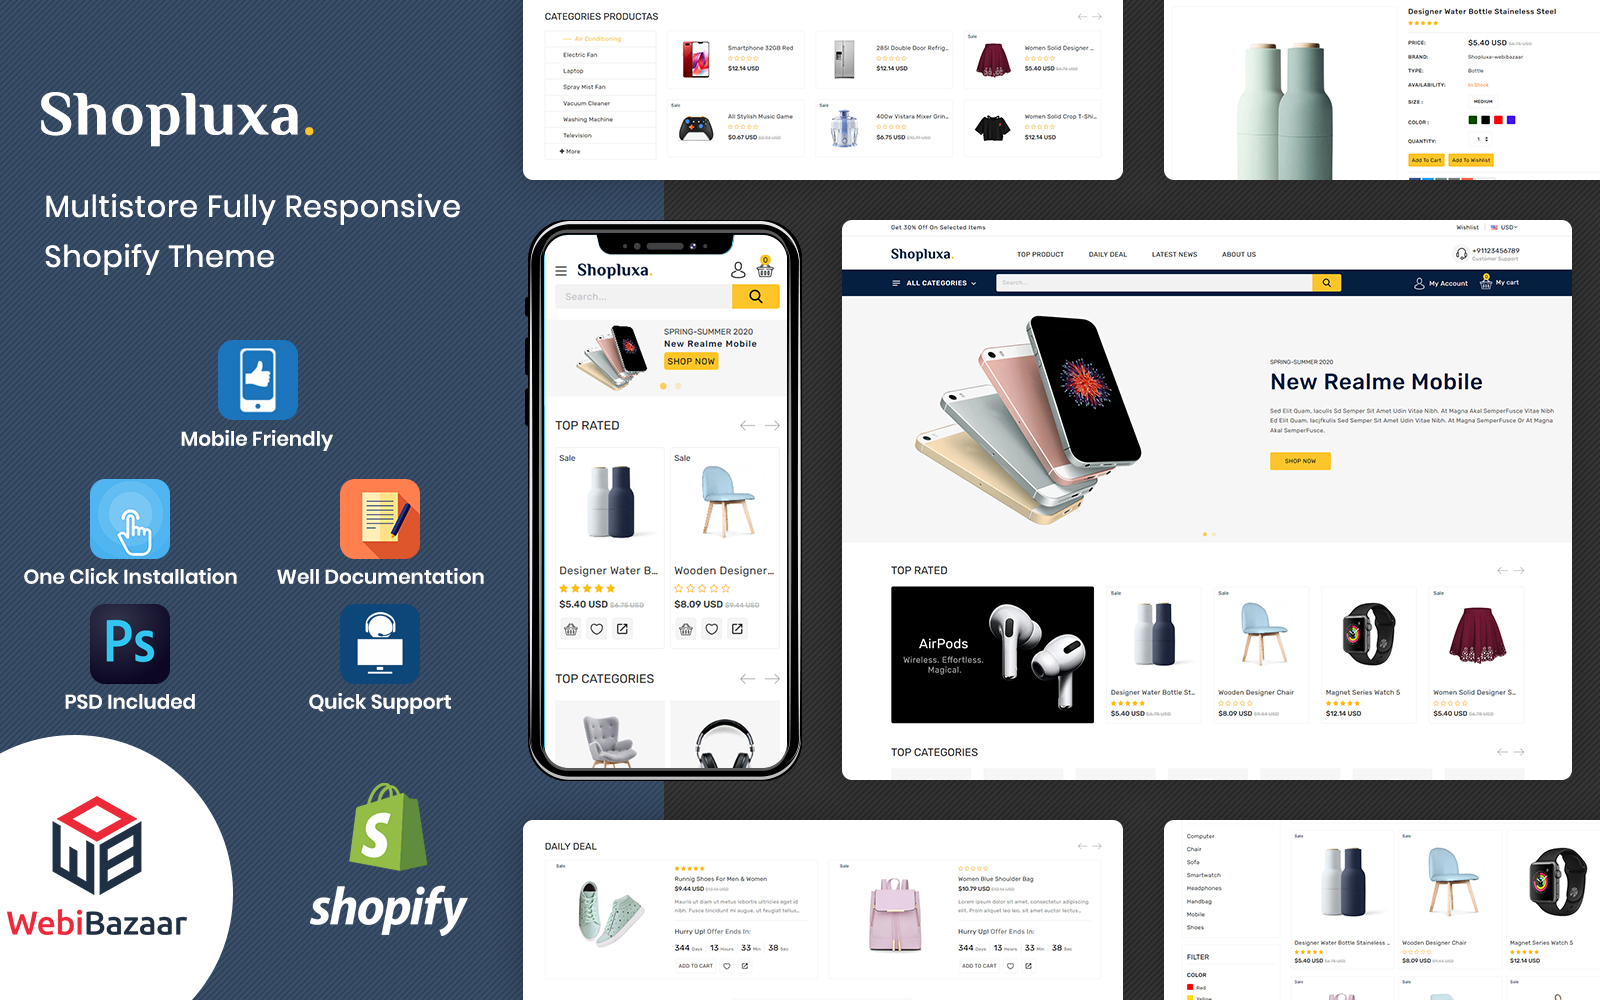 Shopluxa - Multipurpose Premium Shopify Website Template